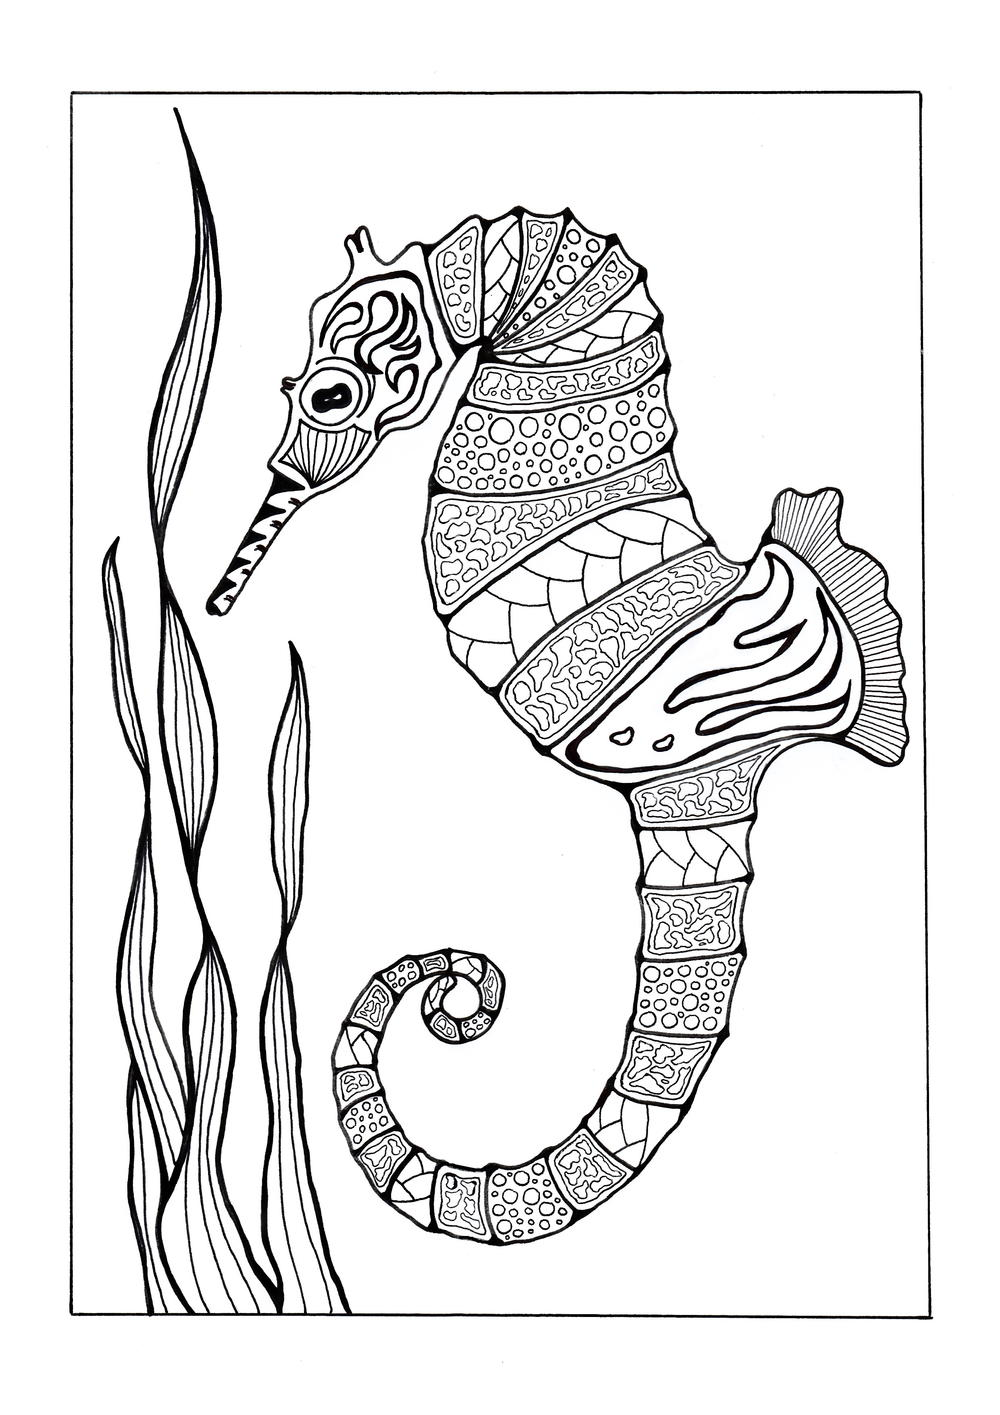 Colorful Seahorse Adult Coloring Page | FaveCrafts.com | coloring pages printable animals